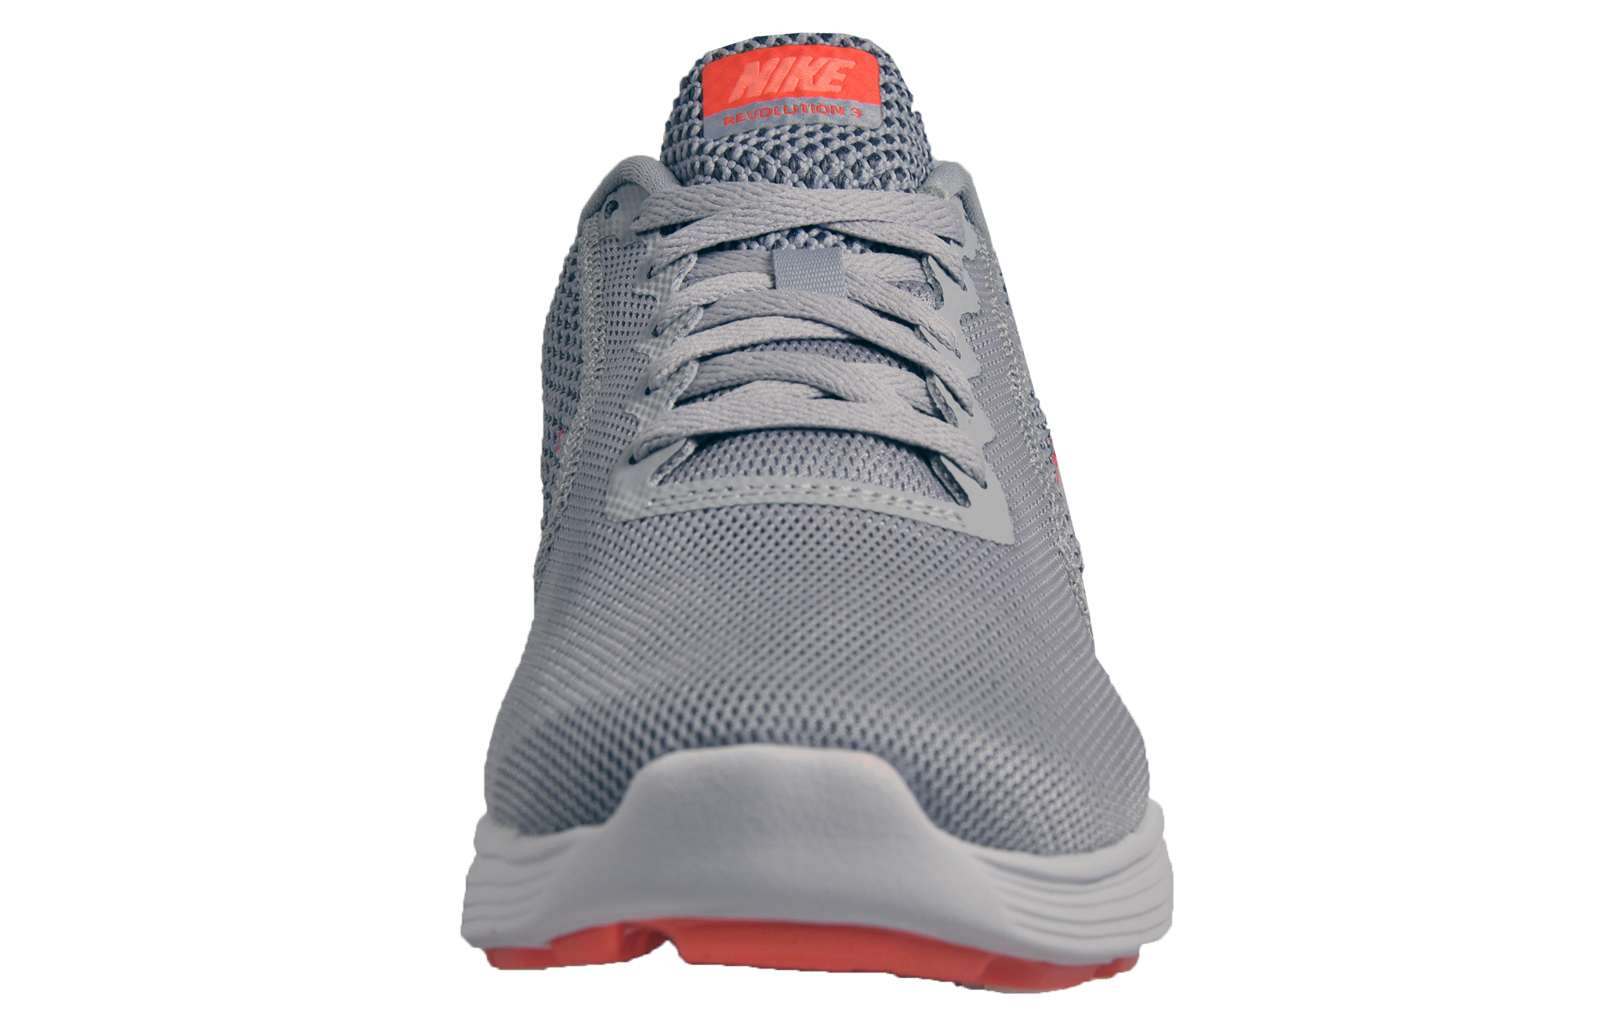 1a375861bff4b Nike Revolution 3 Womens Running Shoes Fitness Gym Trainers Grey